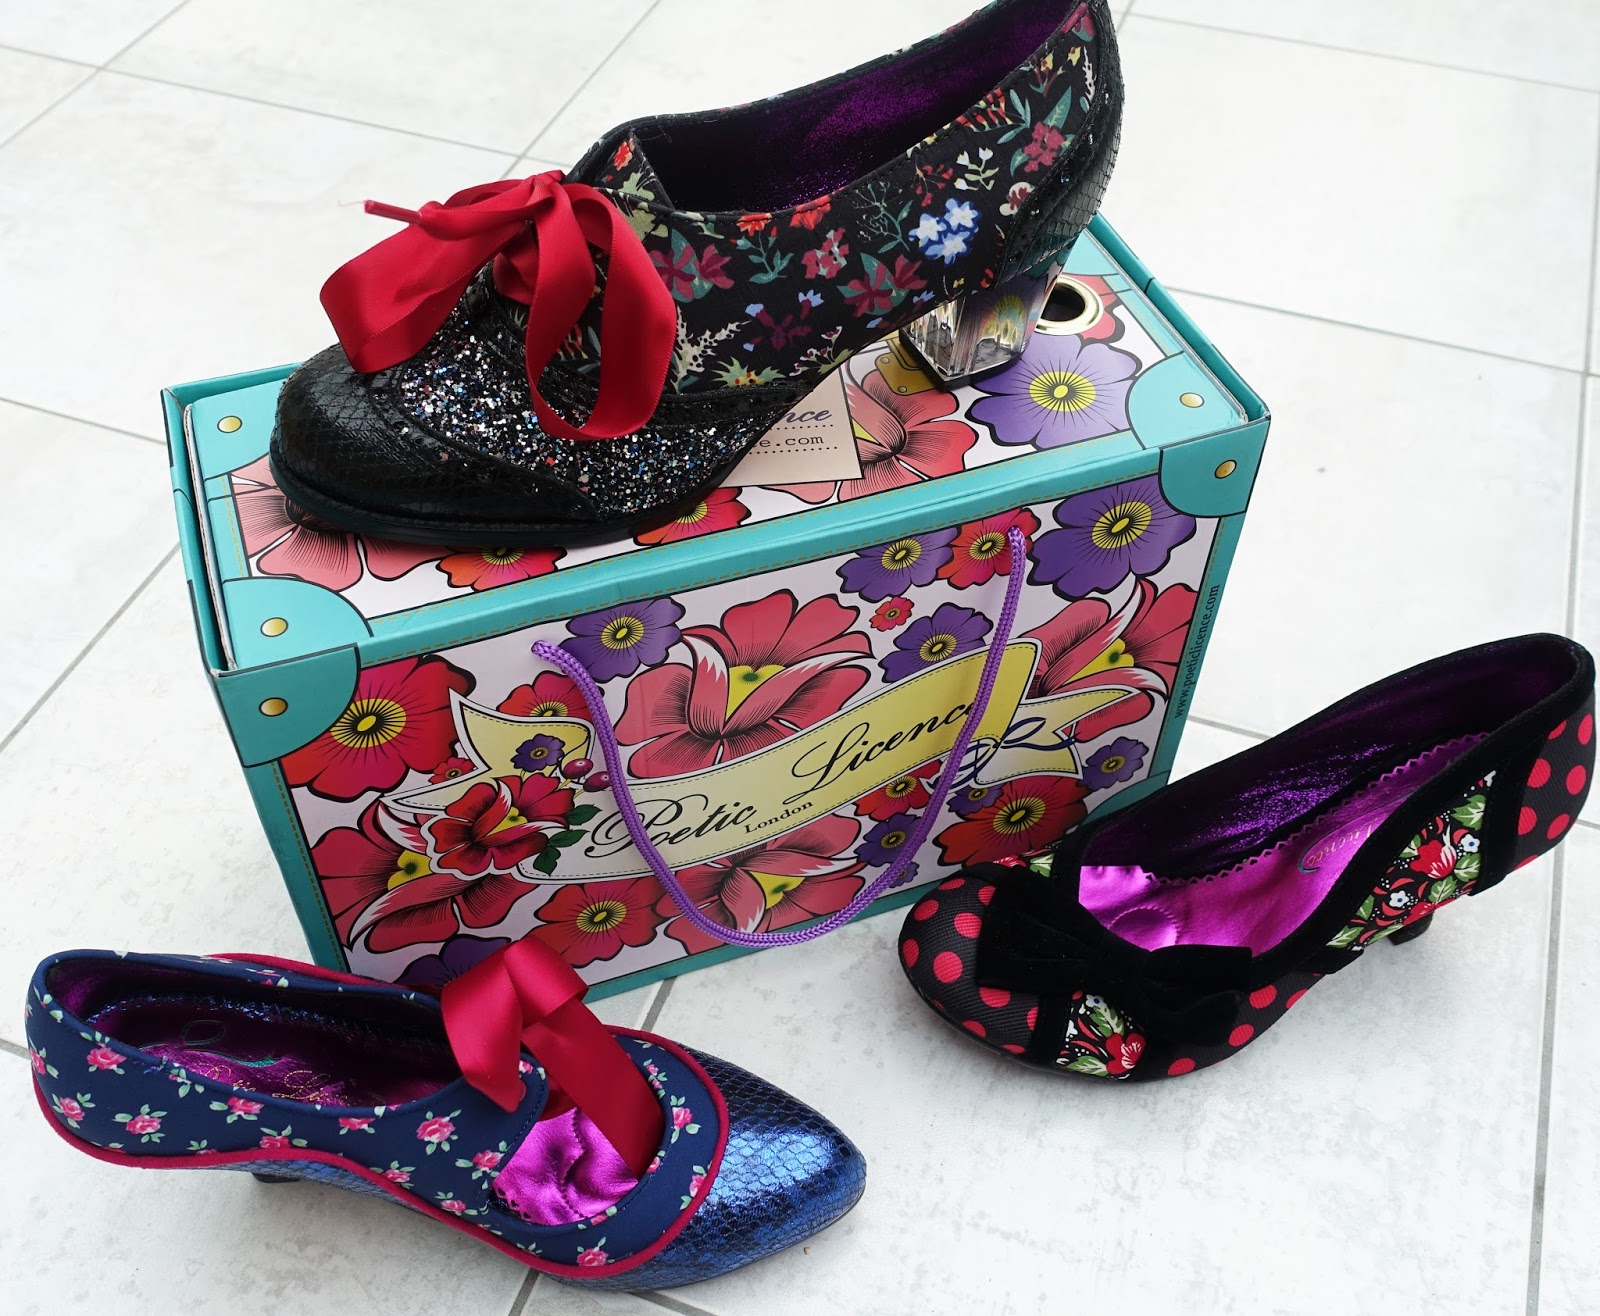 Image showing three different Poetic Licence shoes and the box they come in